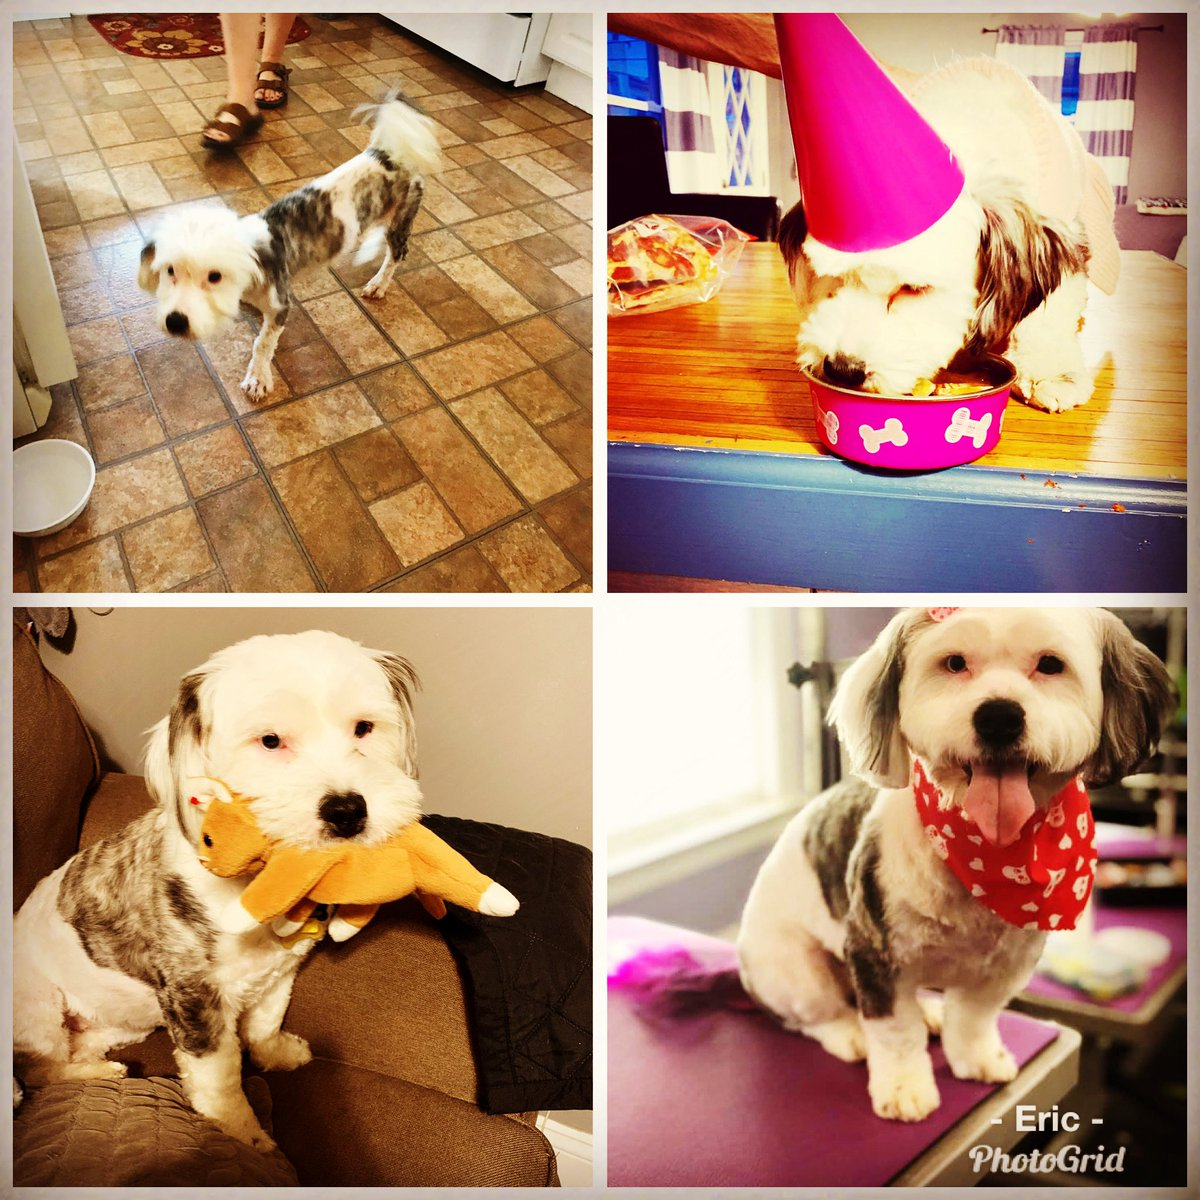 Happy birthday Crystal! #DogsofTwittter living the good life after being rescued from the hood. pic.twitter.com/ip2zehsZQ4